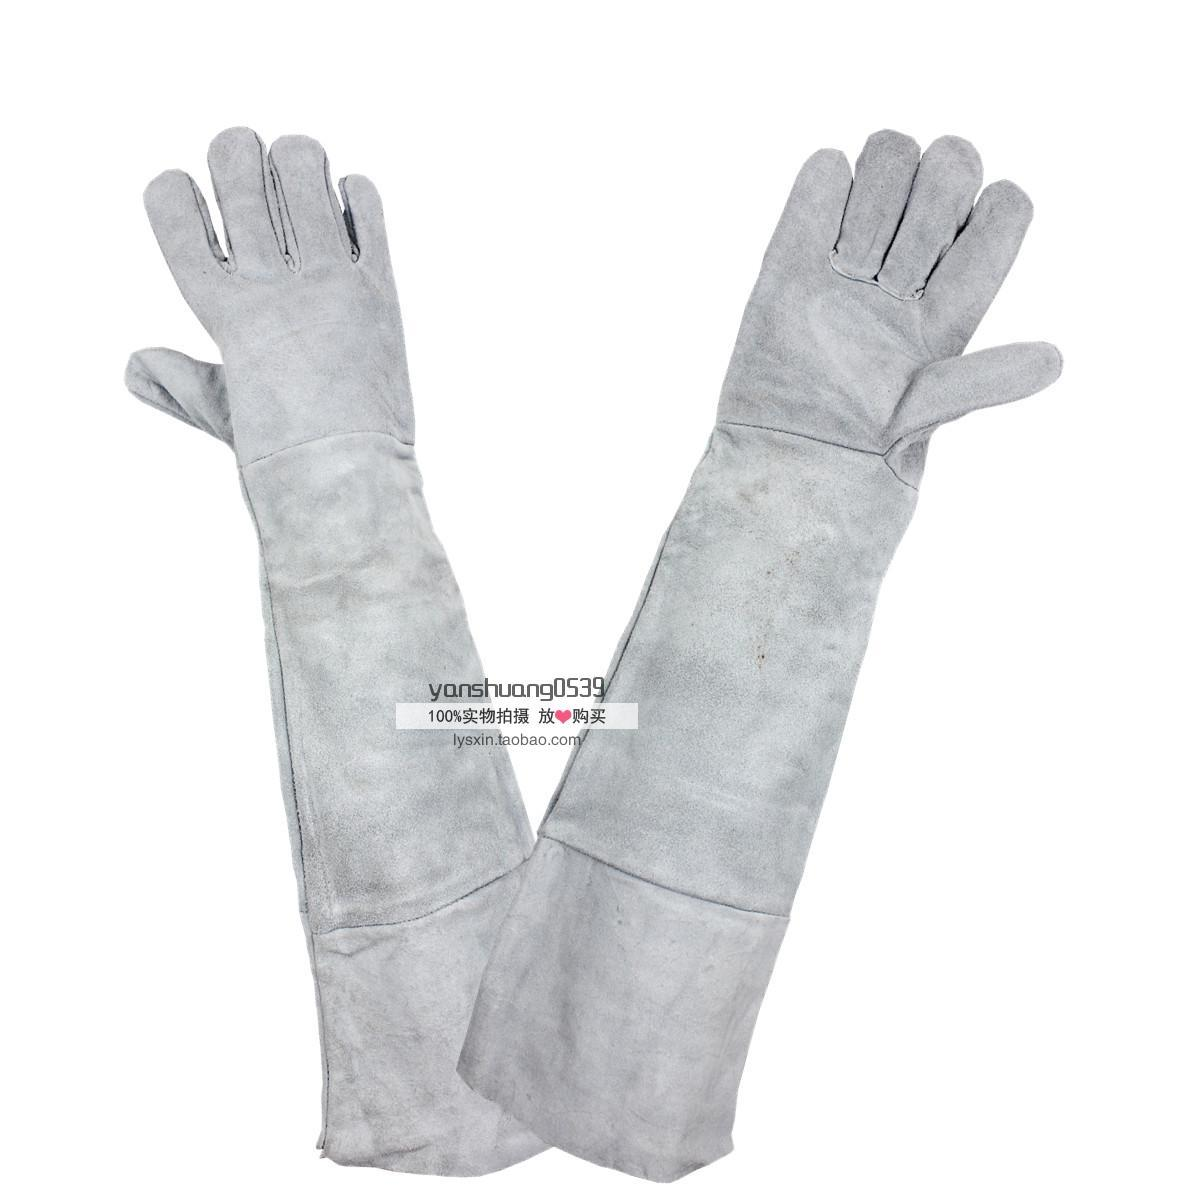 Leather work gloves for welding - 24 Long Protective Work Gloves Extended Leather Welding Machine Super Wear Thick Gloves